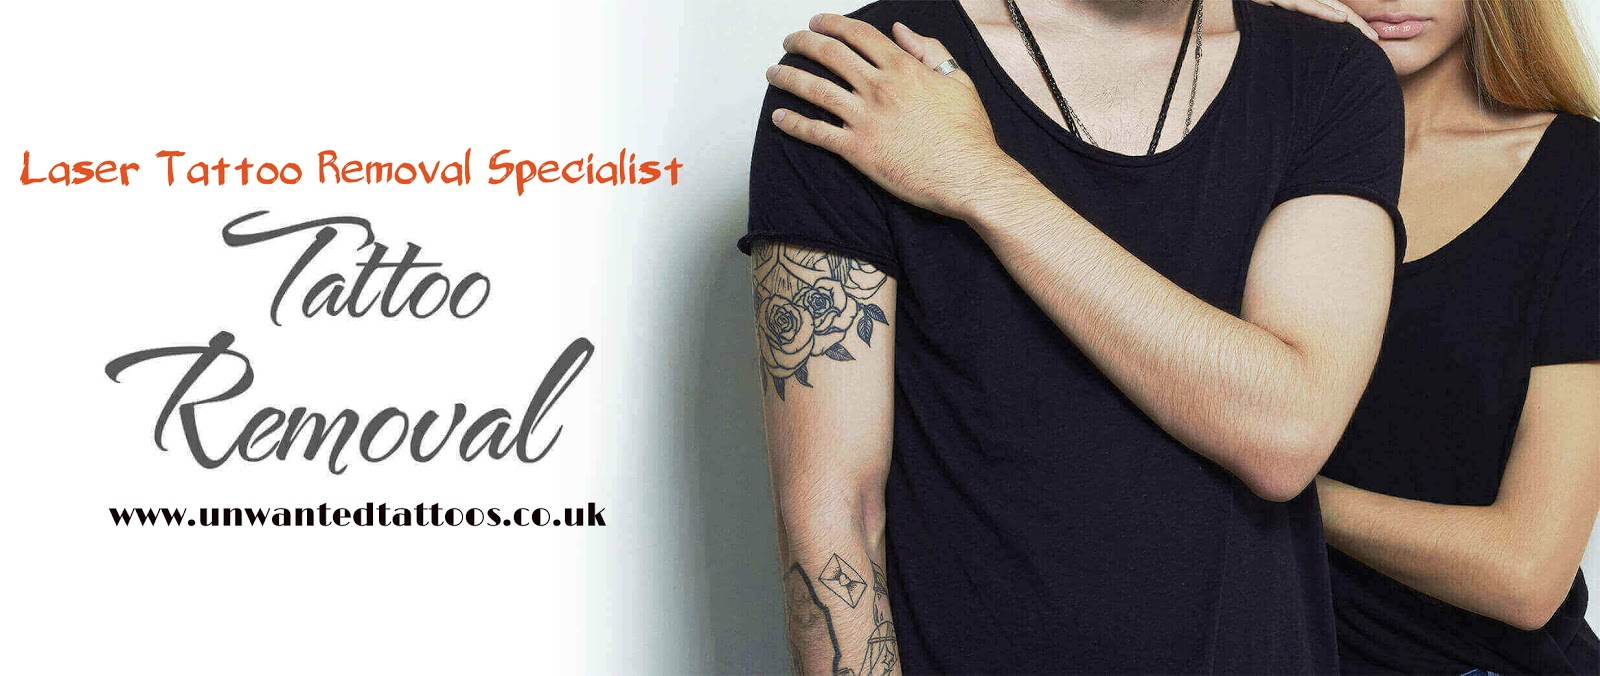 Unwanted Tattoos: Laser Tattoo Removal Specialist - Unwanted Tattoos ...